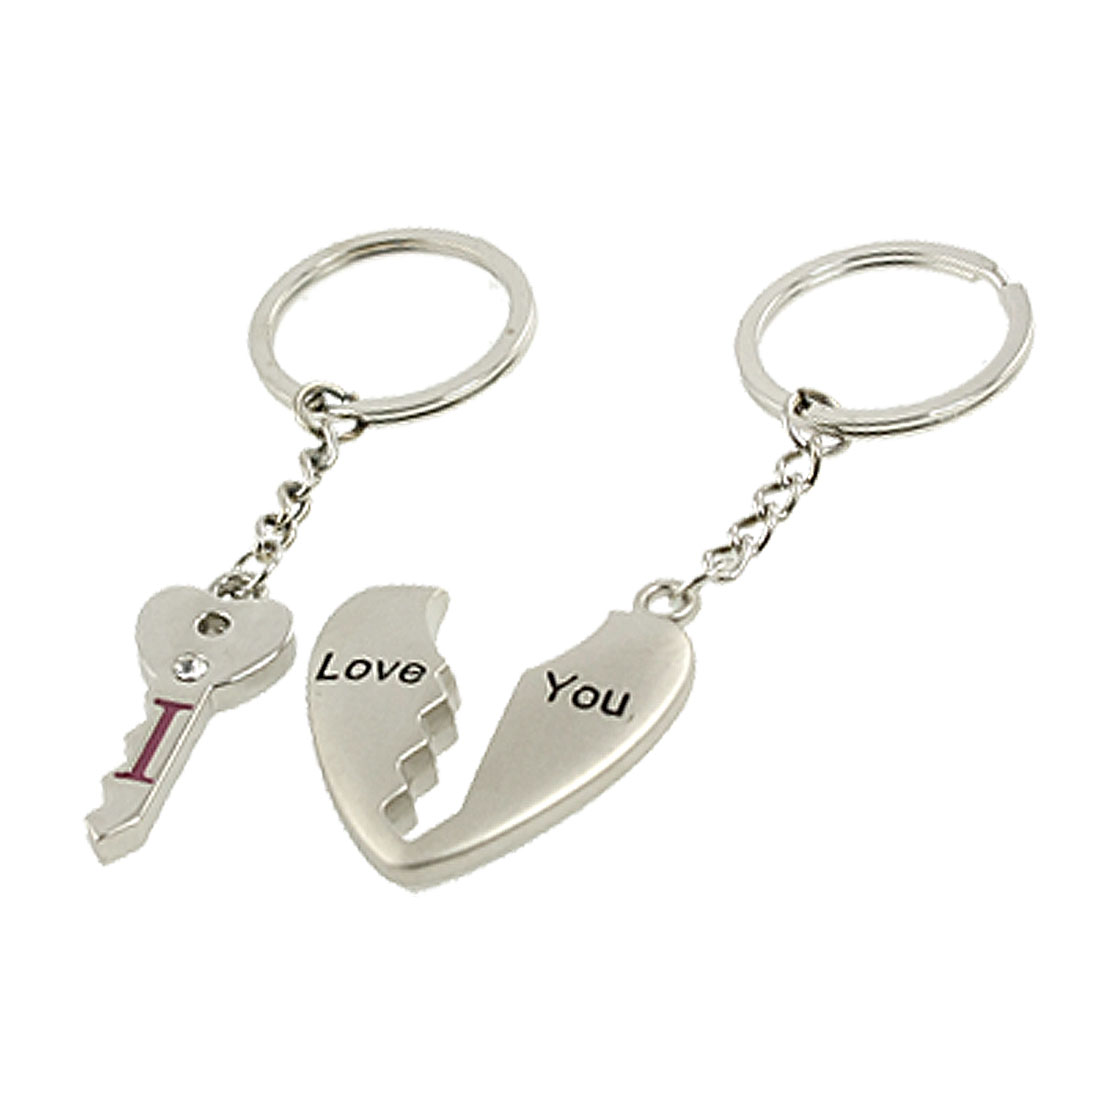 Lovers Couples Silver Tone Metal Heart Key Pandant Keychains Keyrings